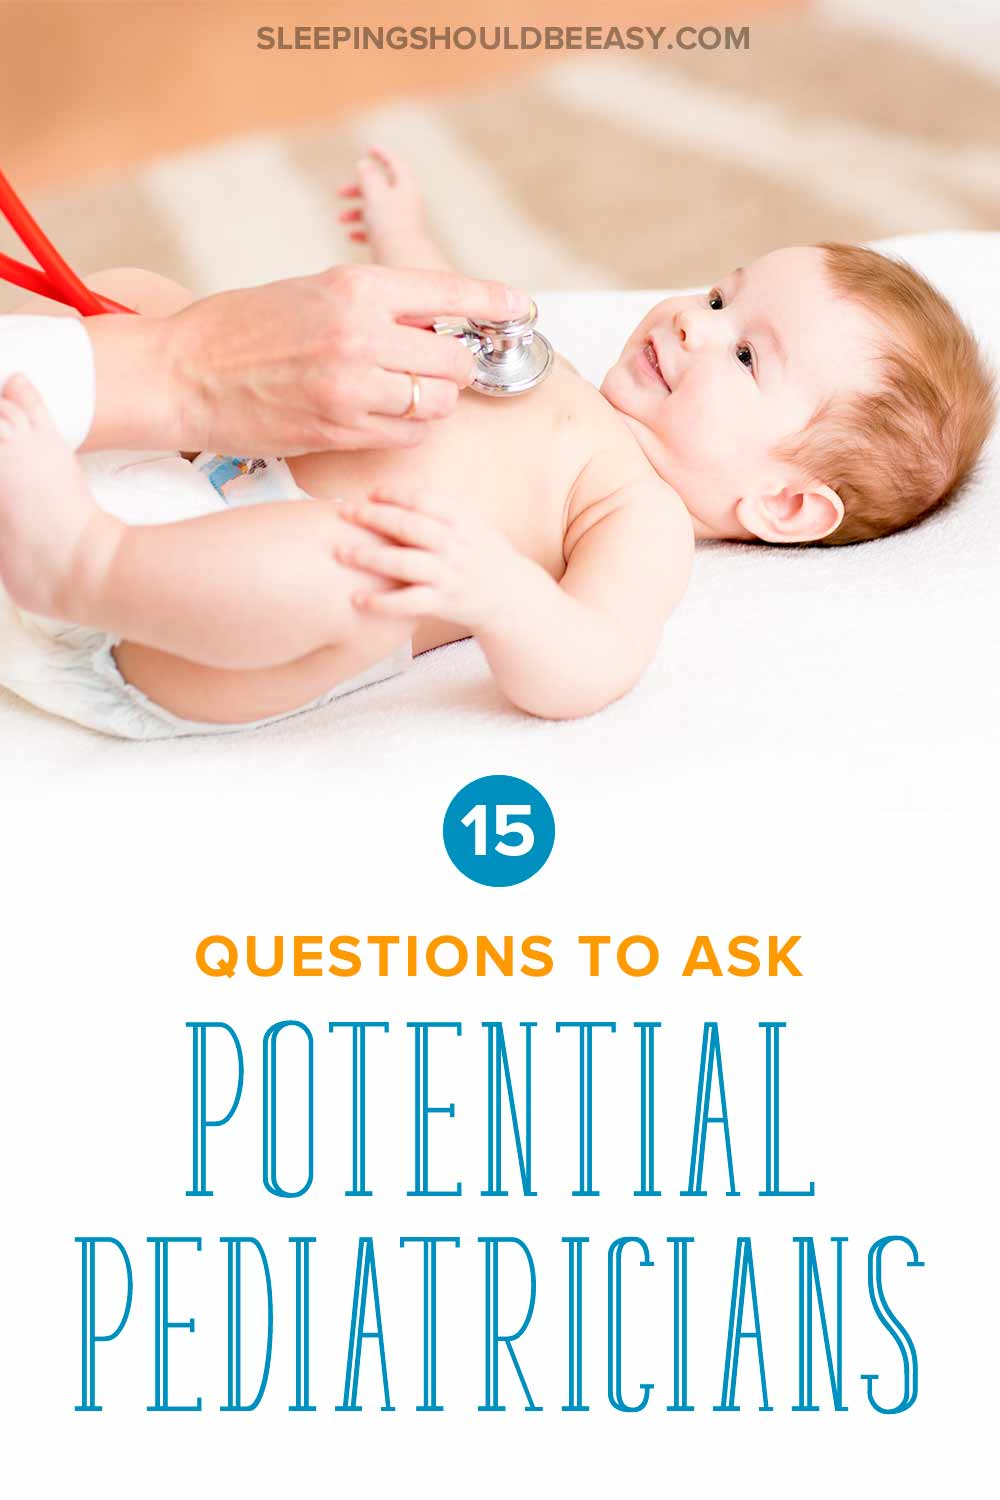 15 questions to ask potential pediatricians: Baby lying down with pediatrician's hand holding a stethoscope to his chest